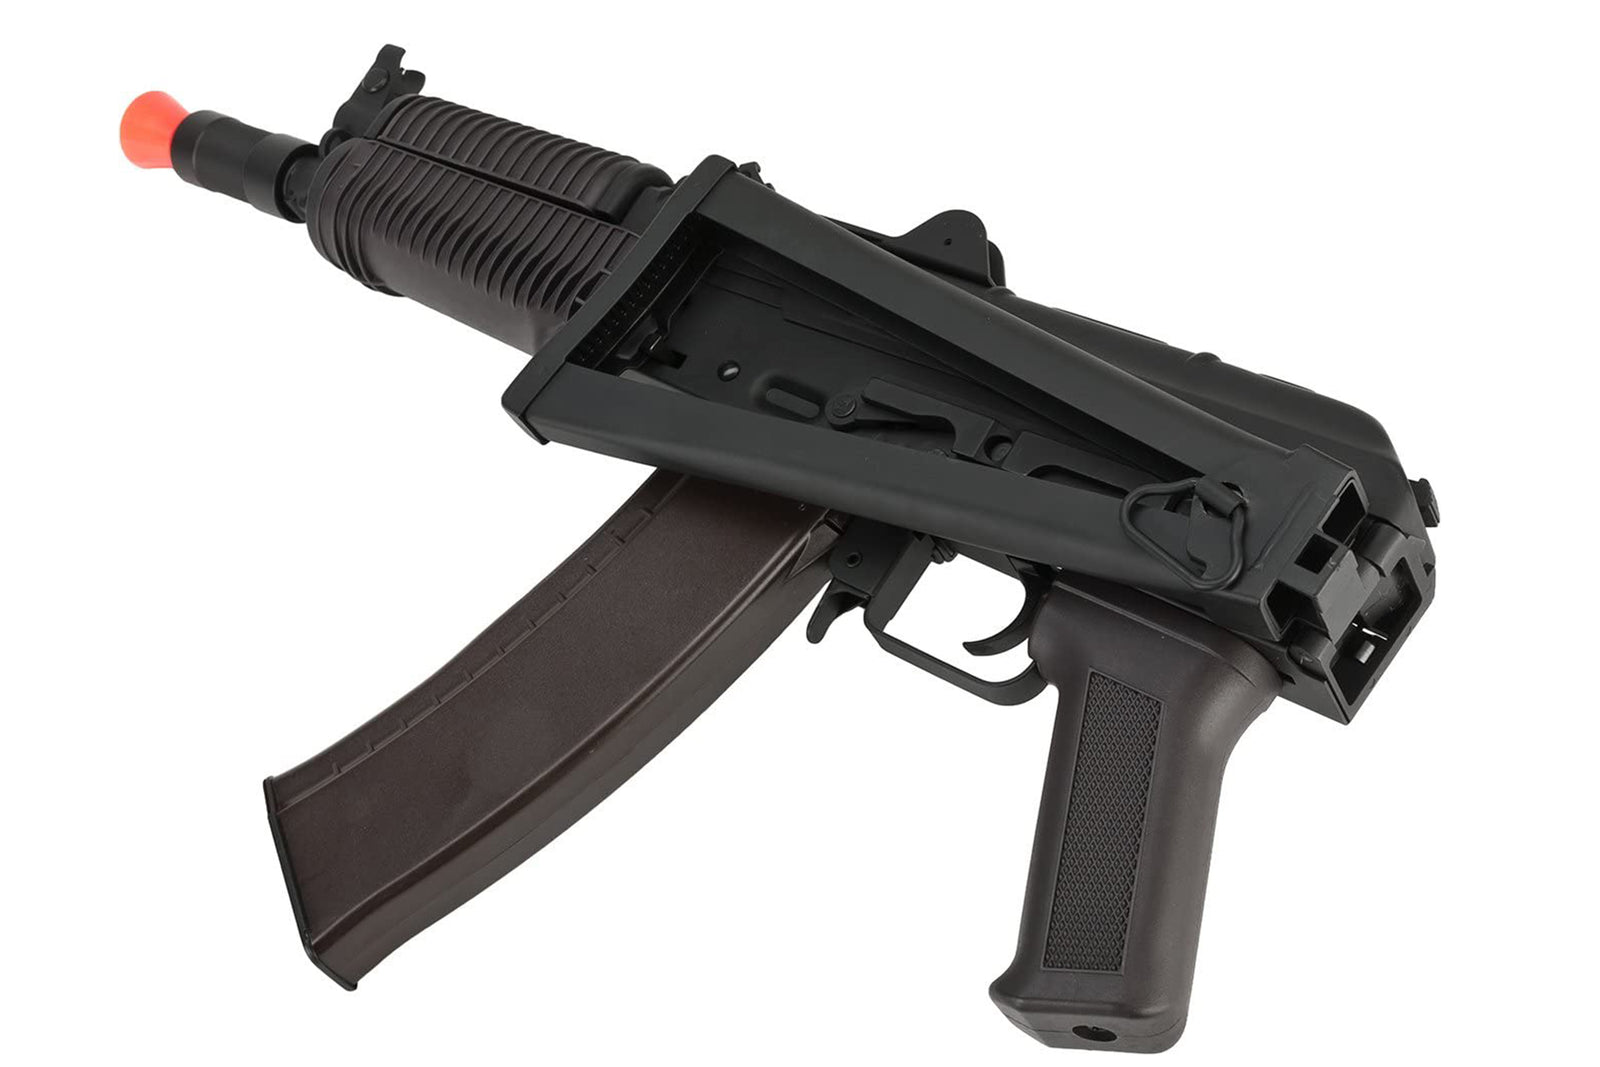 CYMA Standard Stamped Metal AK74U Airsoft AEG Rifle w/ Folding Stock and Polymer Furniture